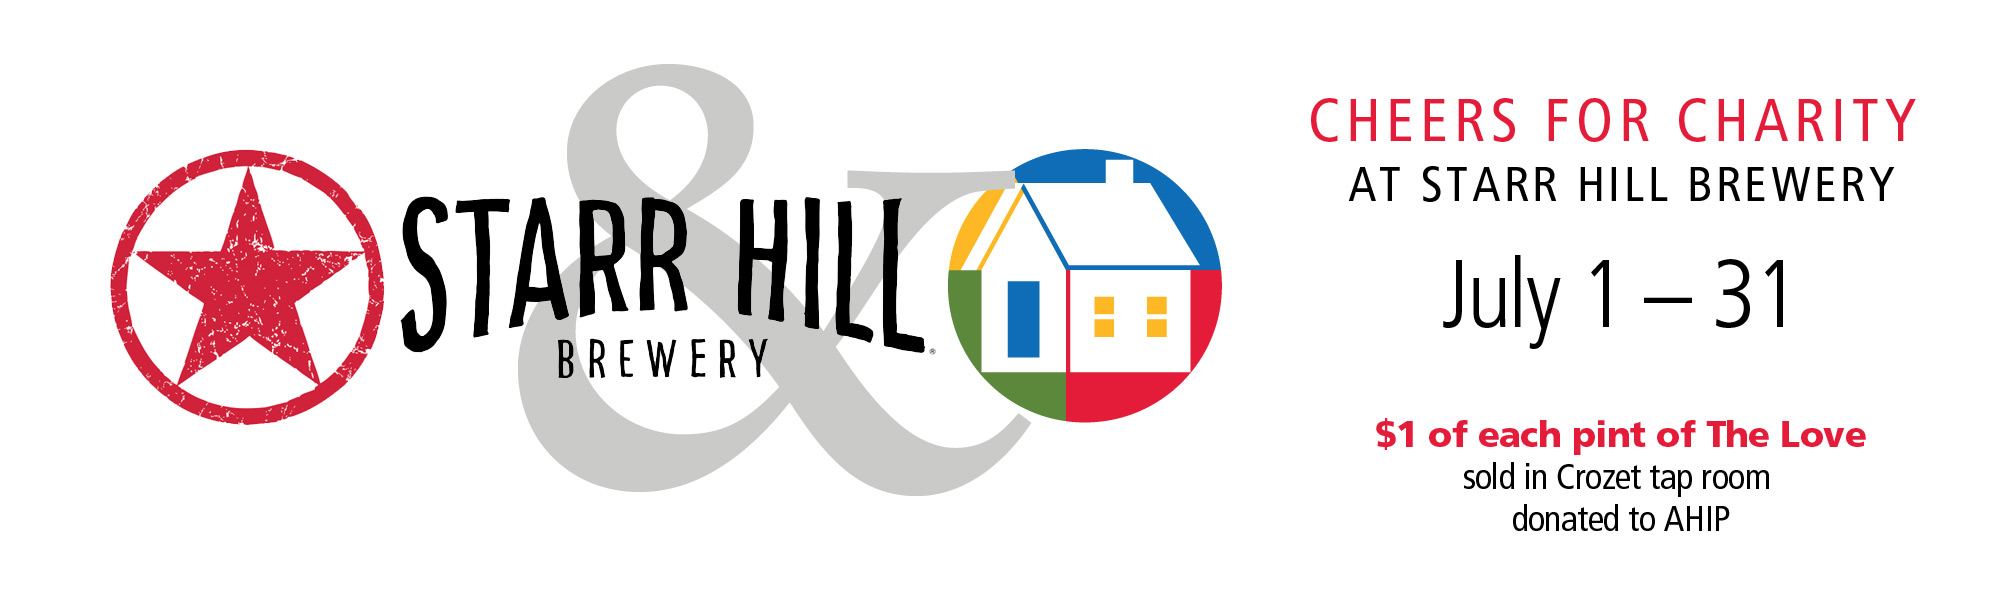 AHIP Is July 'Cheers for Charity' Beneficiary at Starr Hill's Crozet Taproom